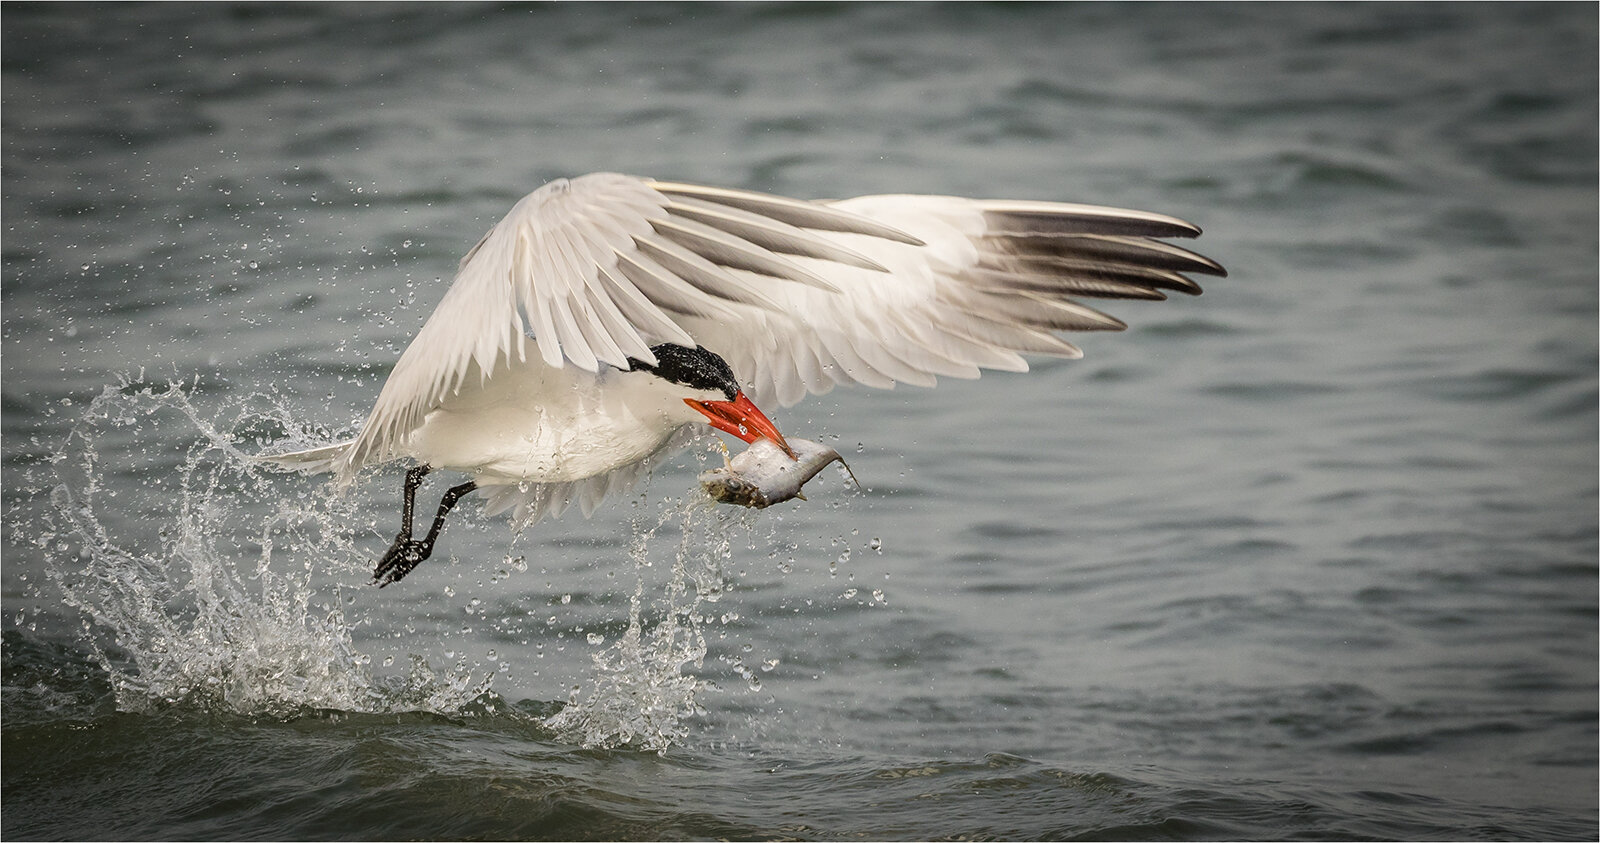 Caspian Tern with Catch © Ian Francis ARPS DPAGB